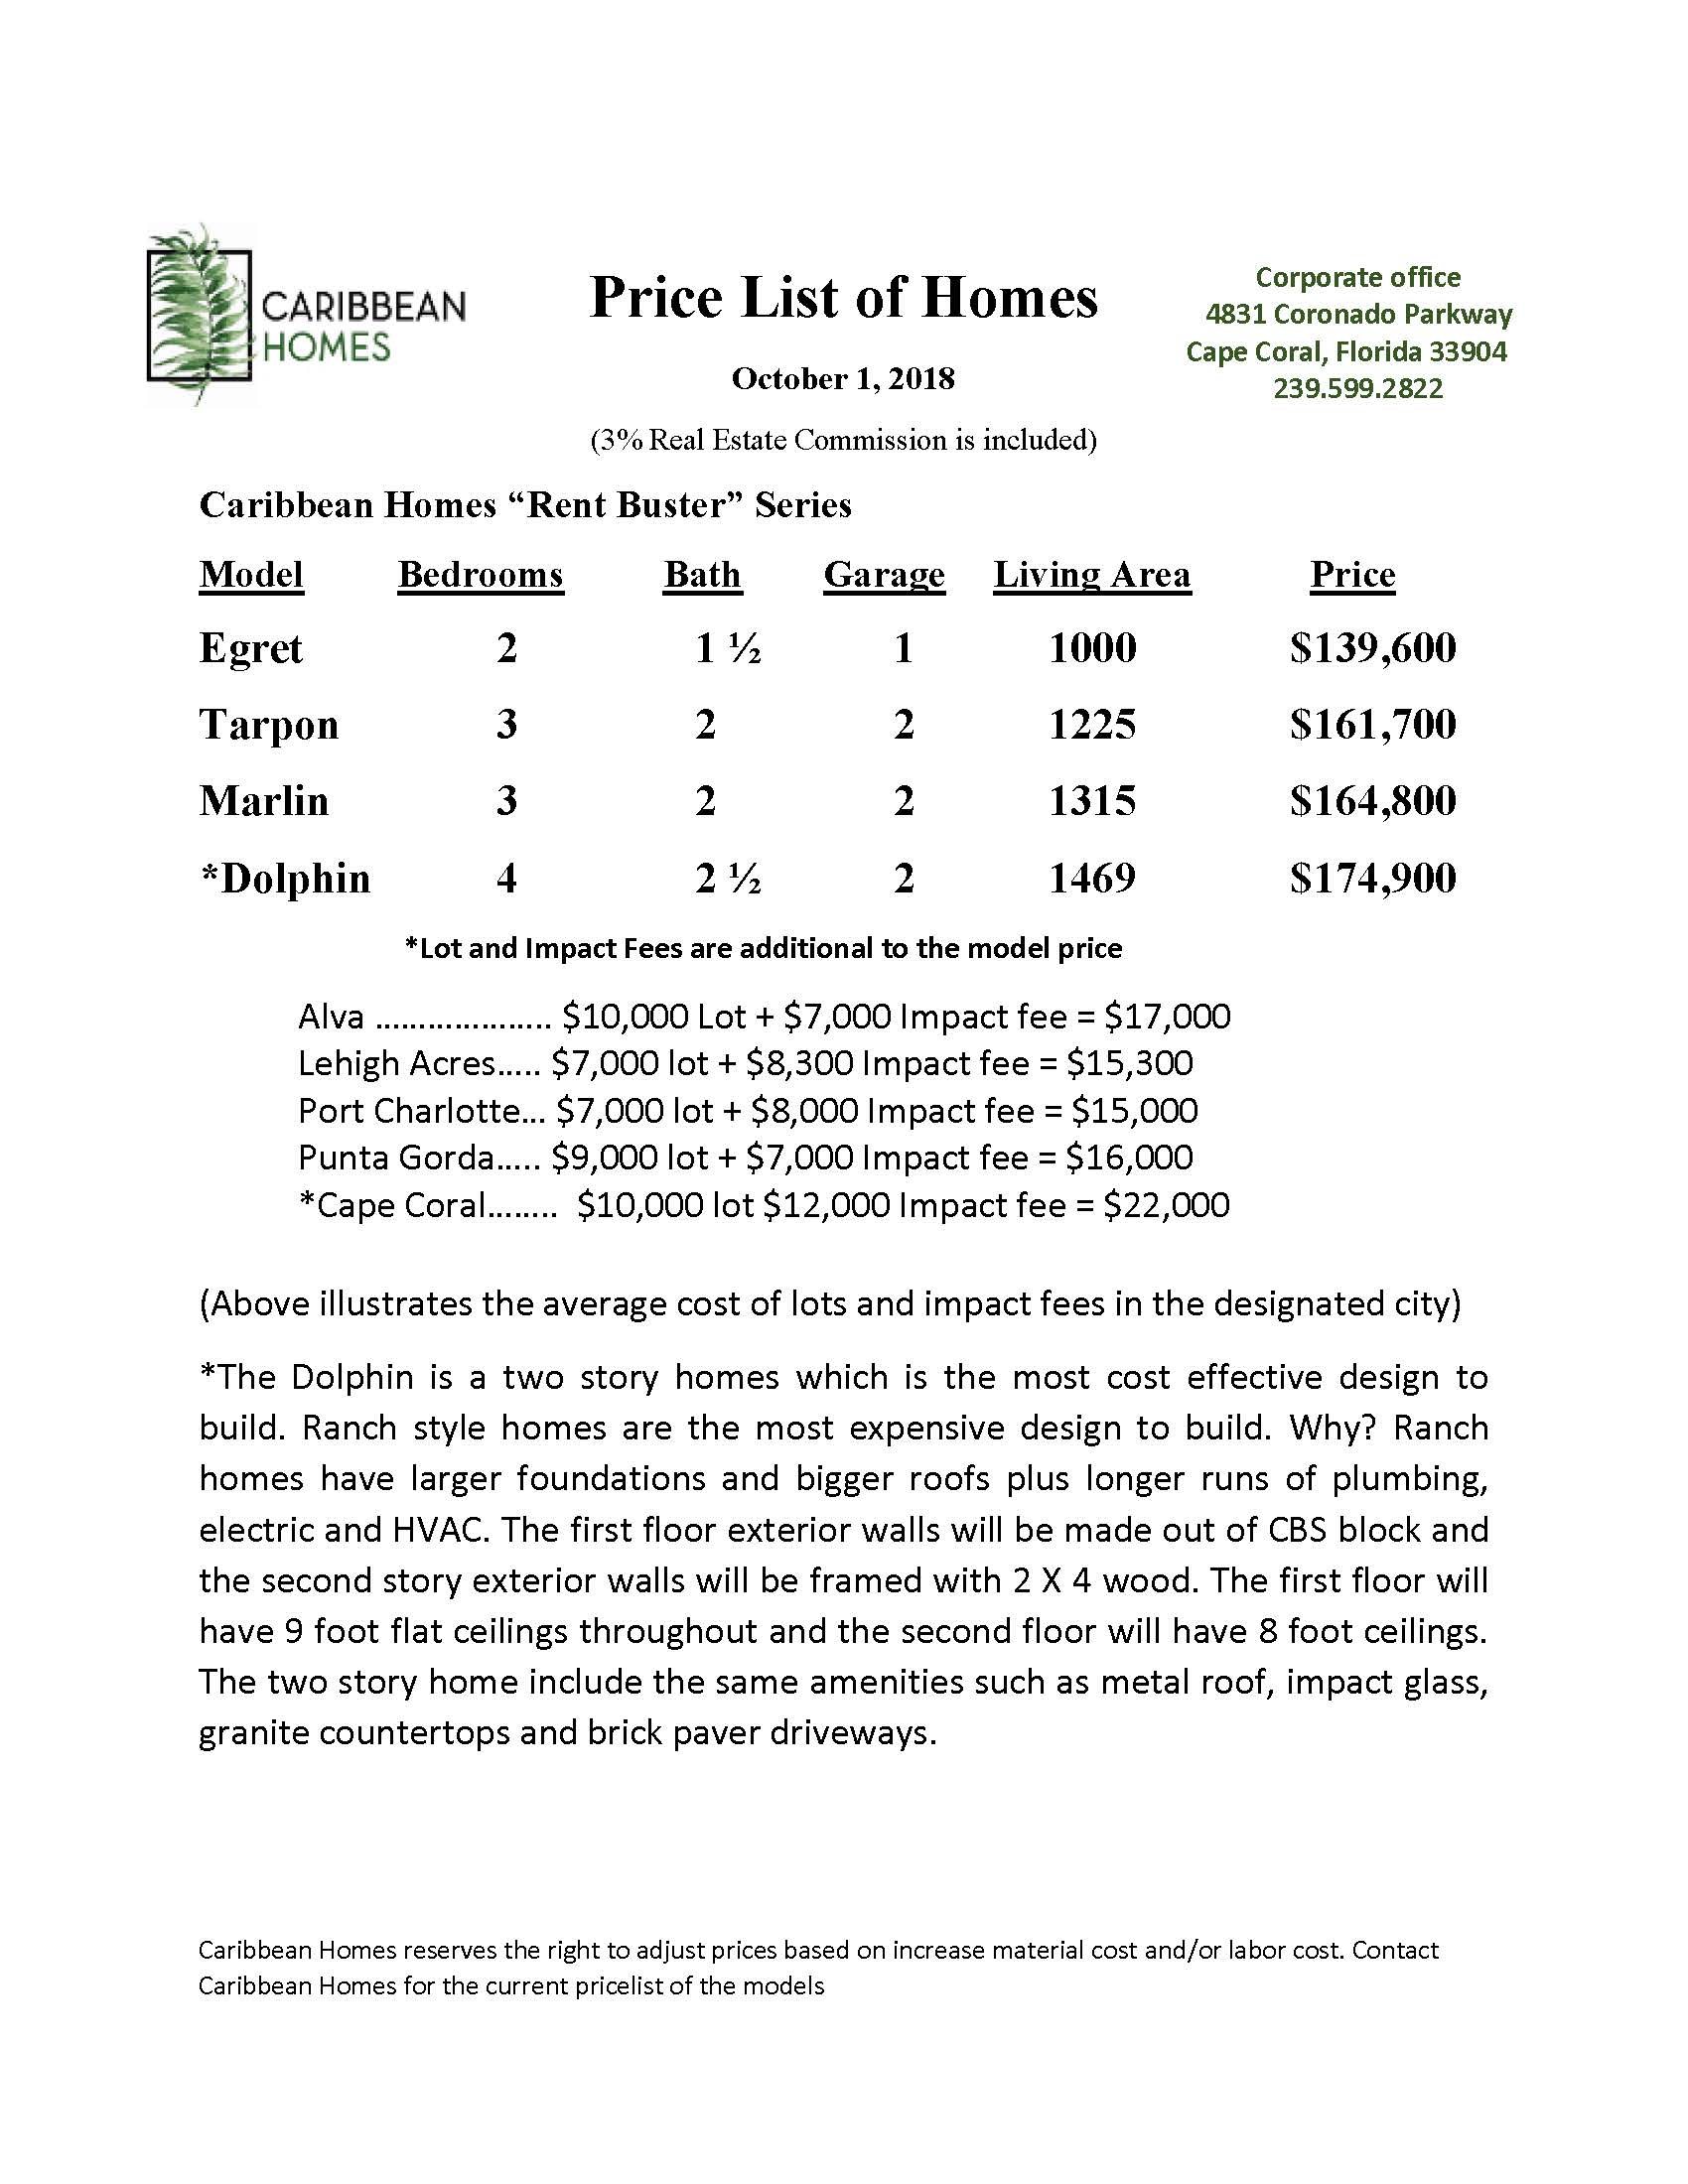 Rent Buster Price List doc